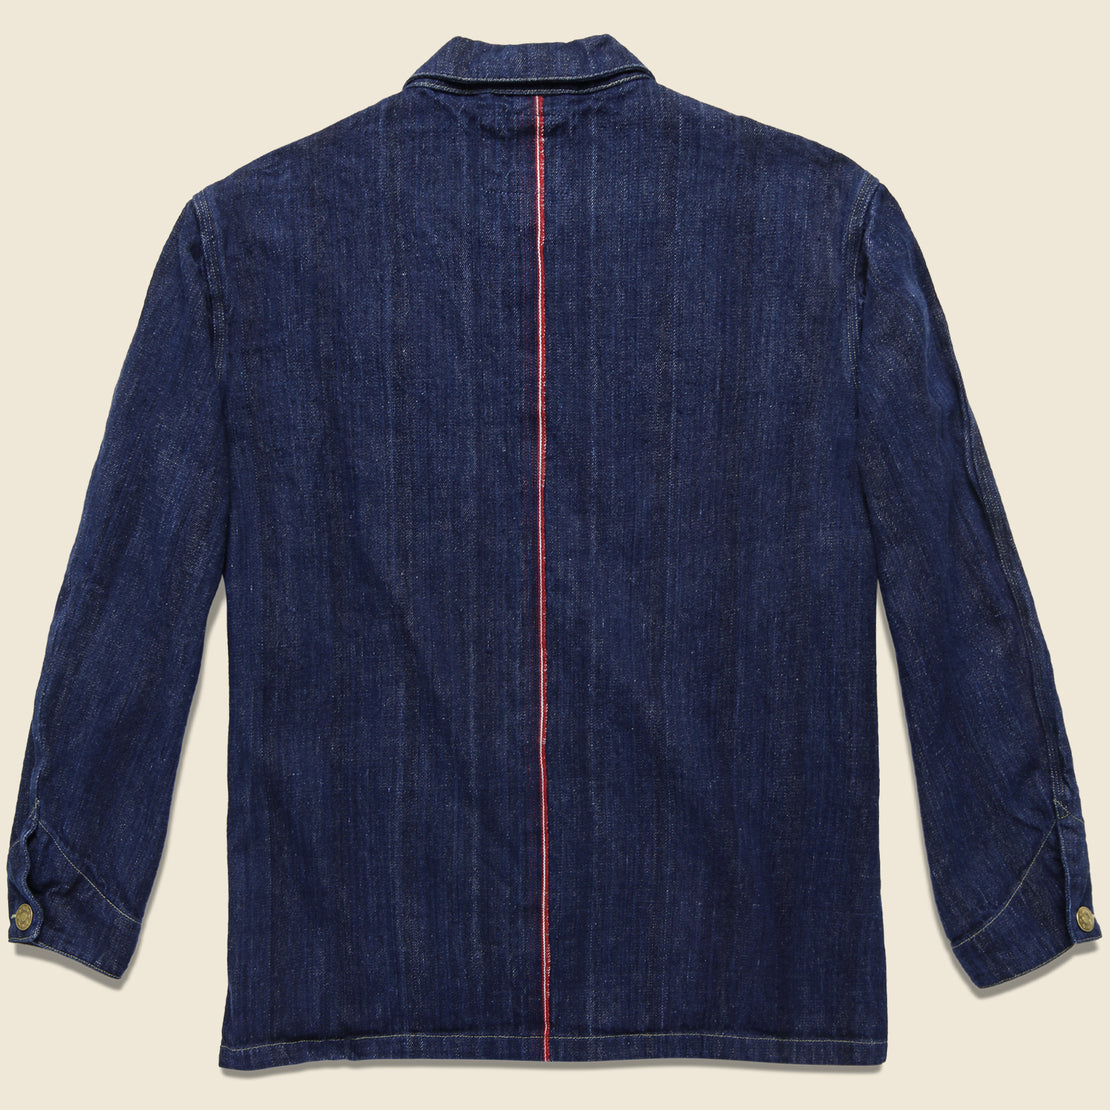 Selvedge Denim Jacket - Indigo